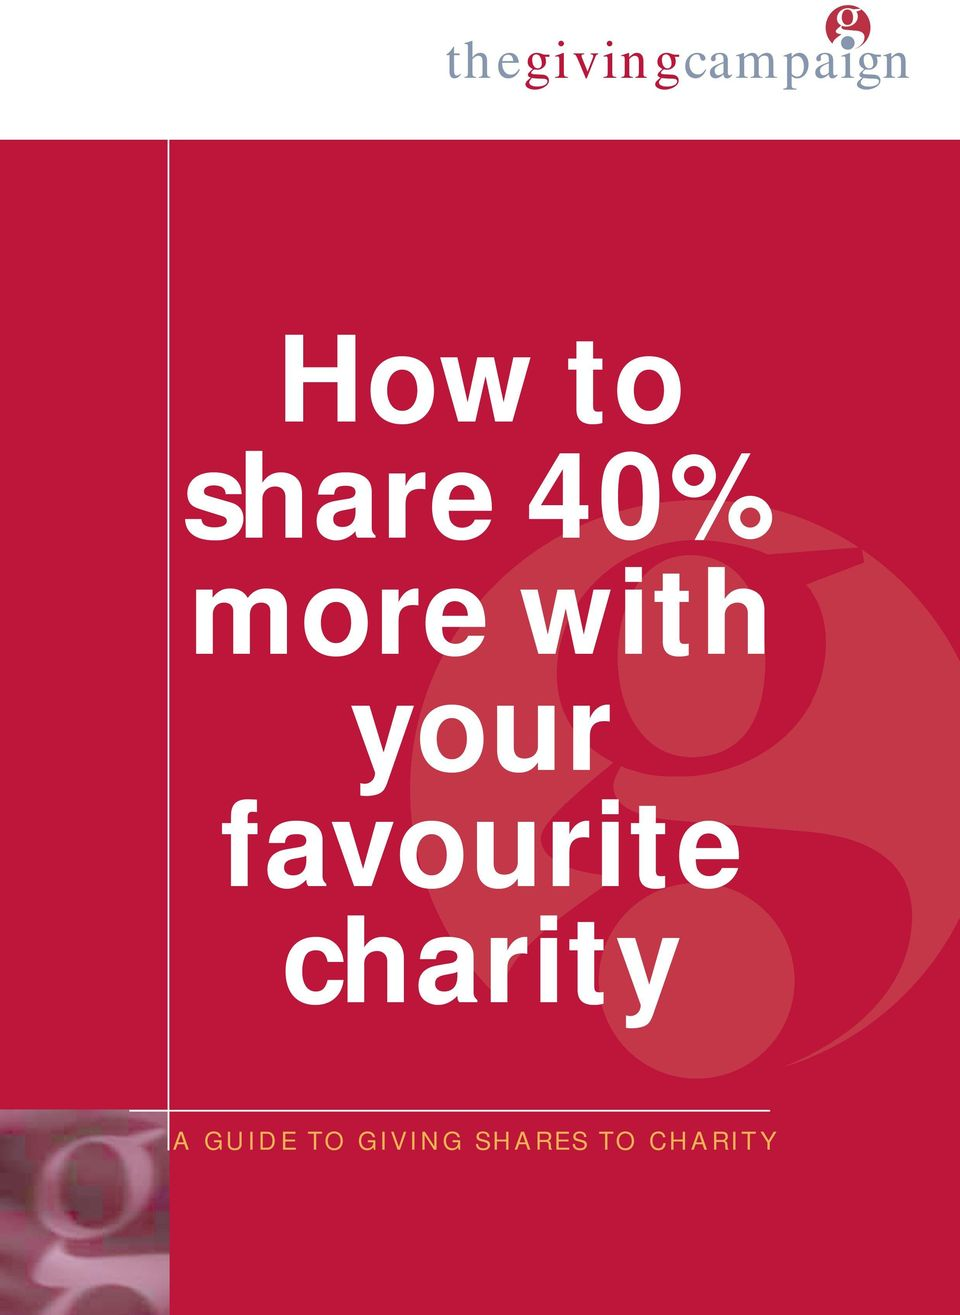 favourite charity A GUIDE